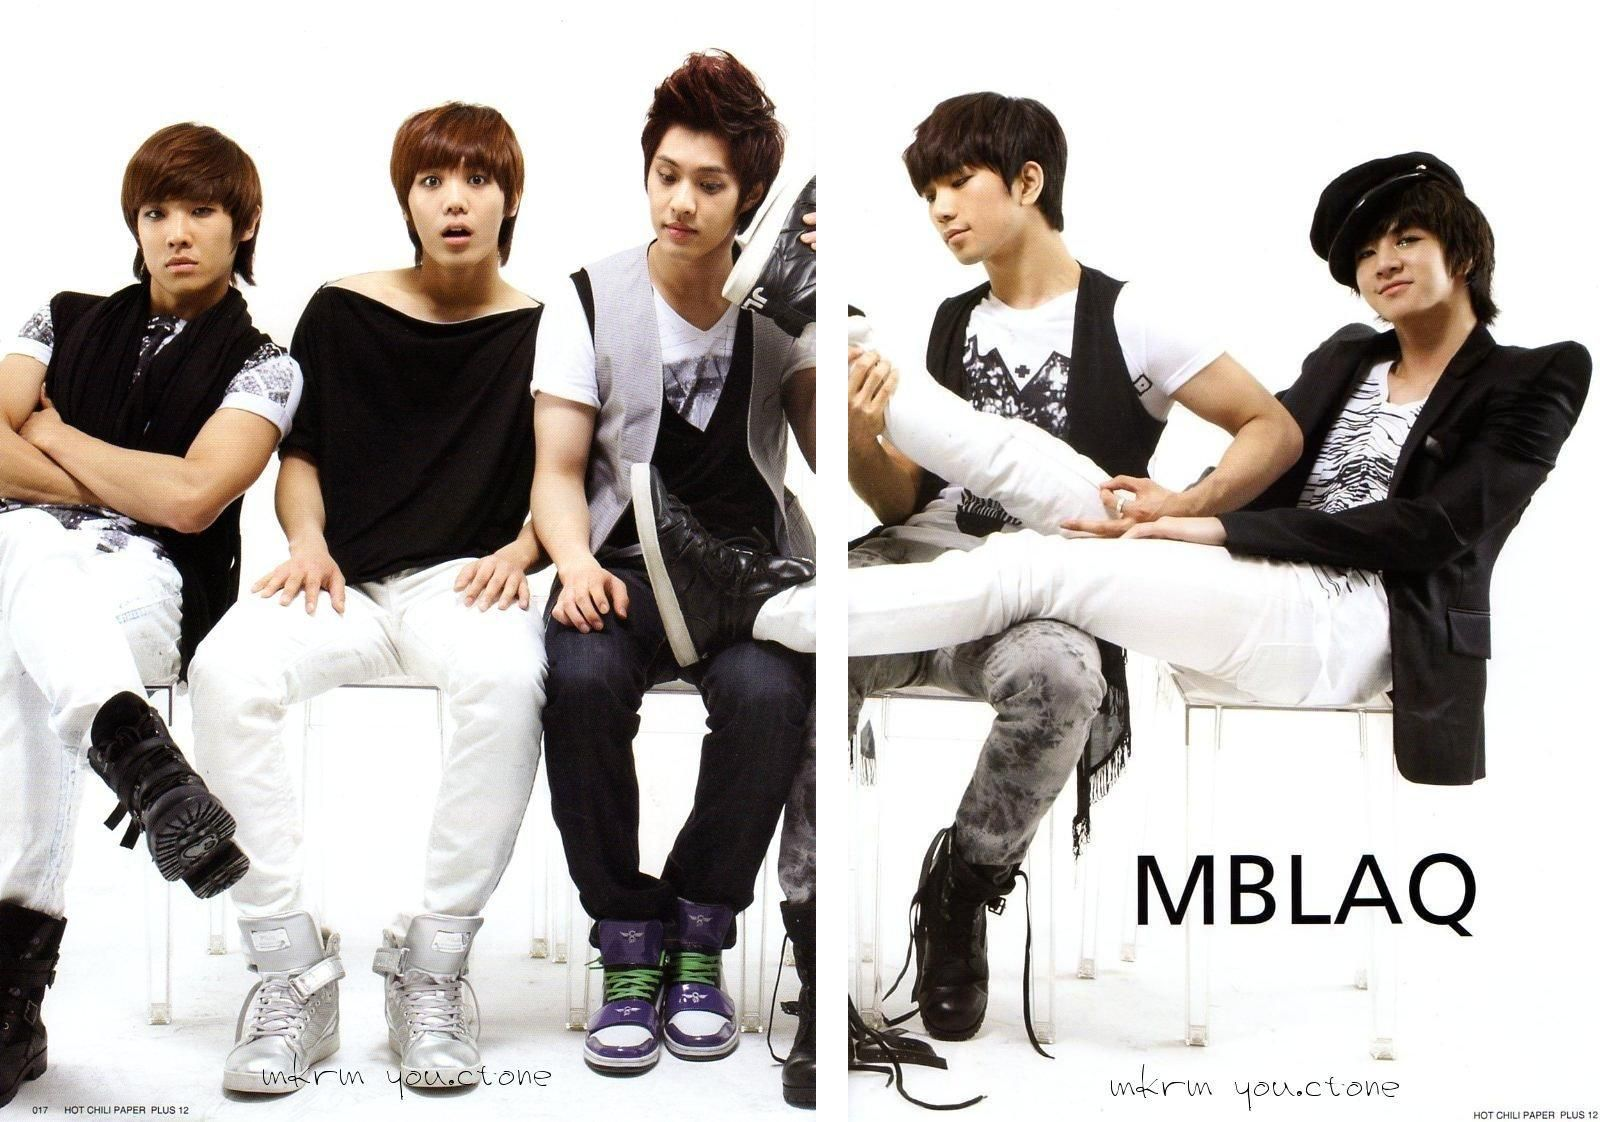 Mblaq Photo Mblaq Boy Groups Korean Music Pop Group